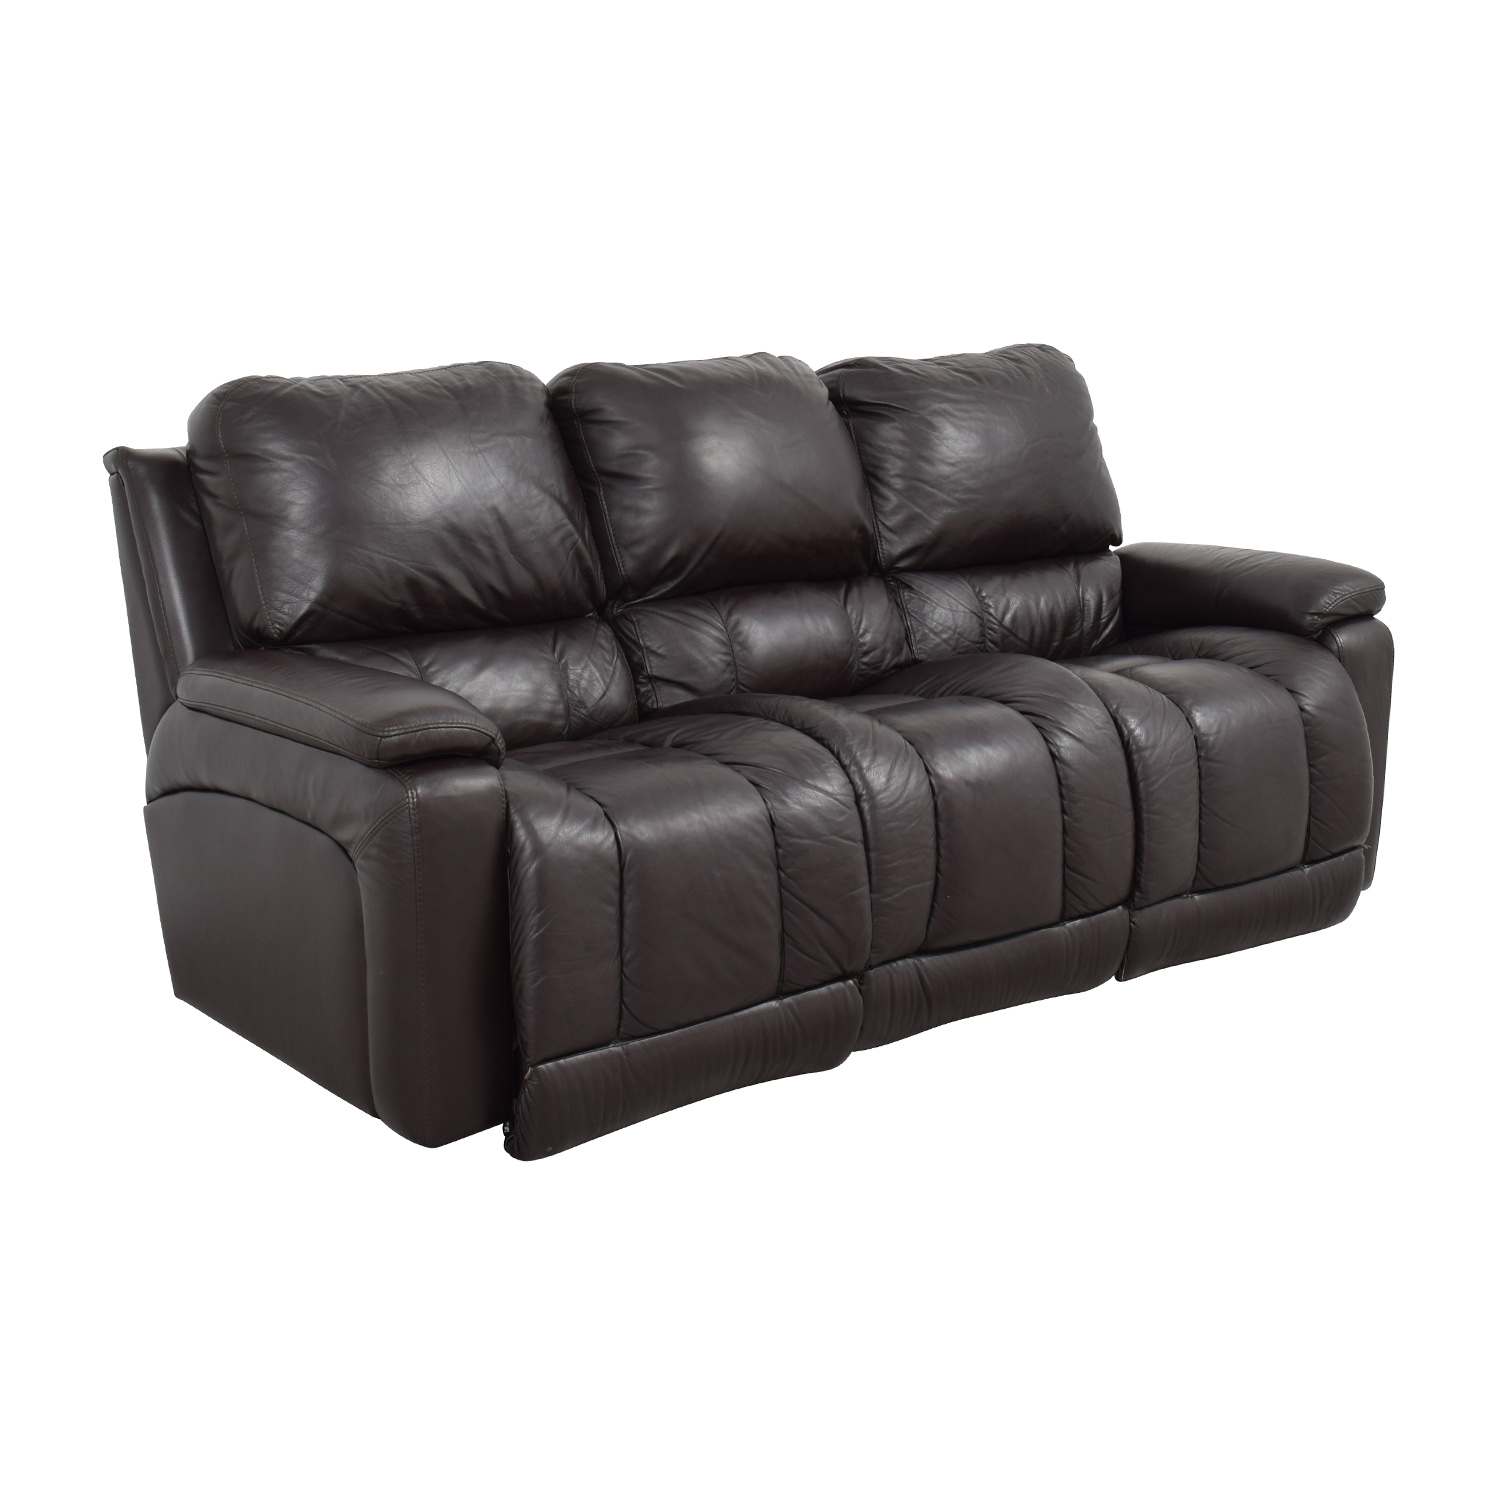 77 Off La Z Boy La Z Boy Brown Leather Reclining Sofa